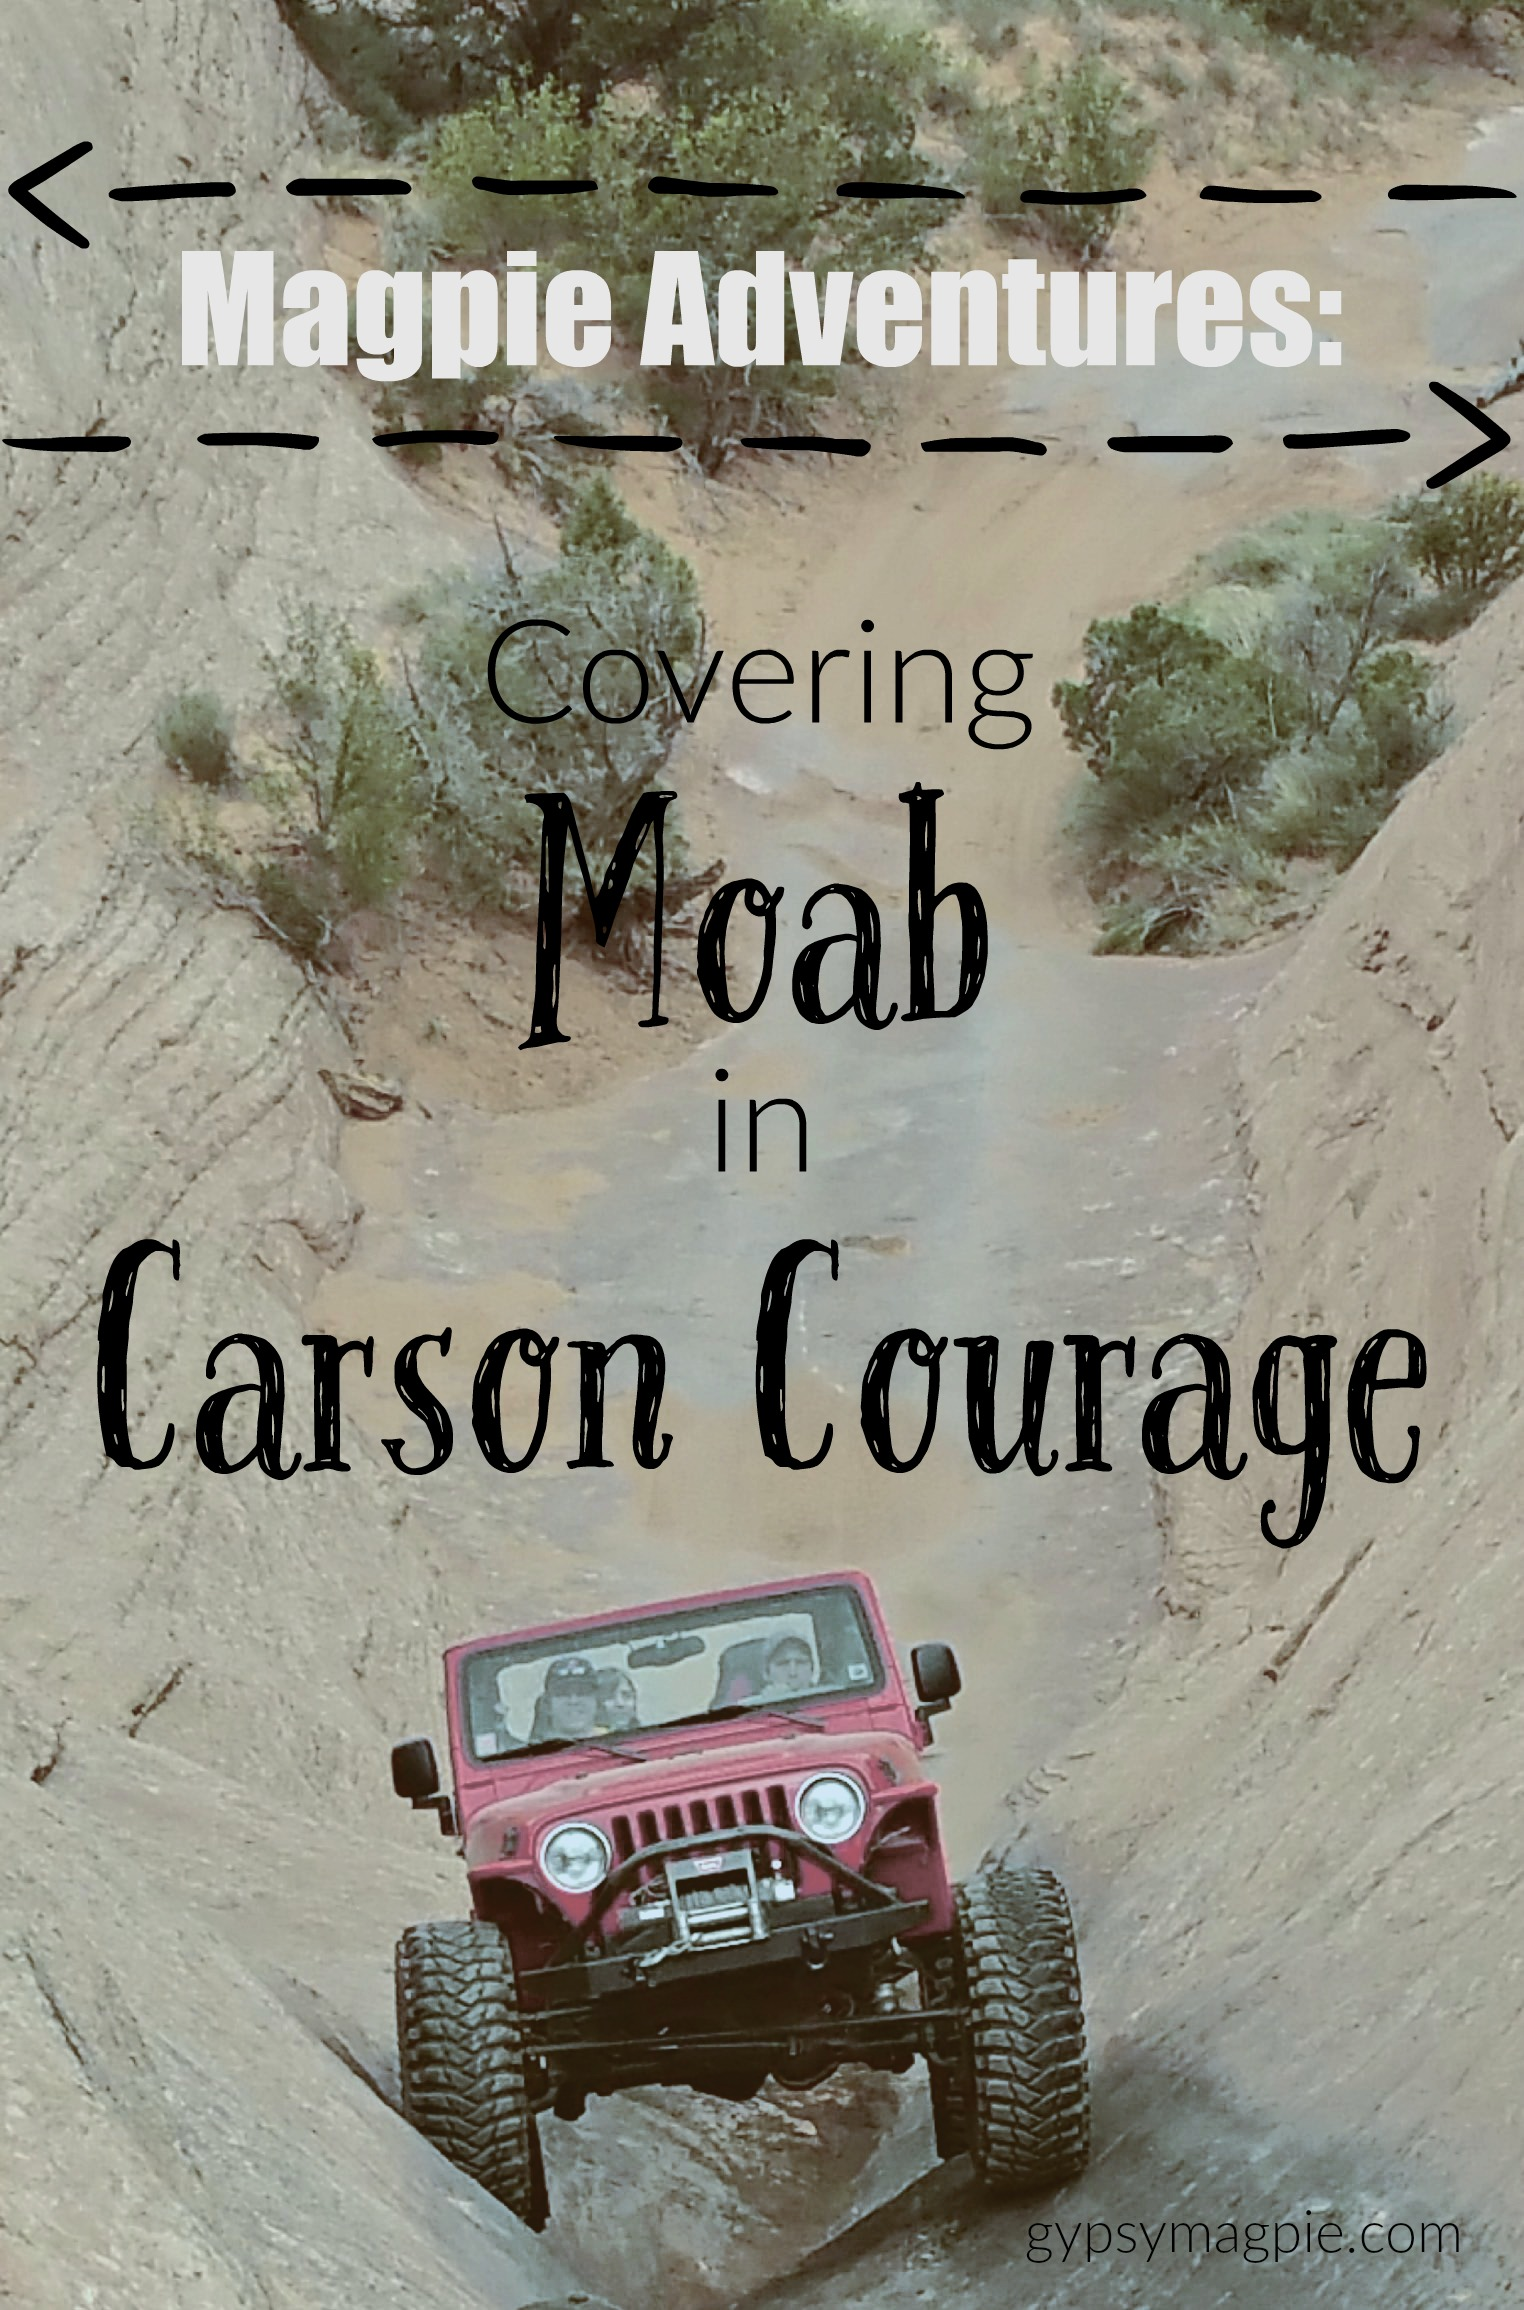 Magpie Adventures: Covering Moab in Carson Courage {Gypsy Magpie}